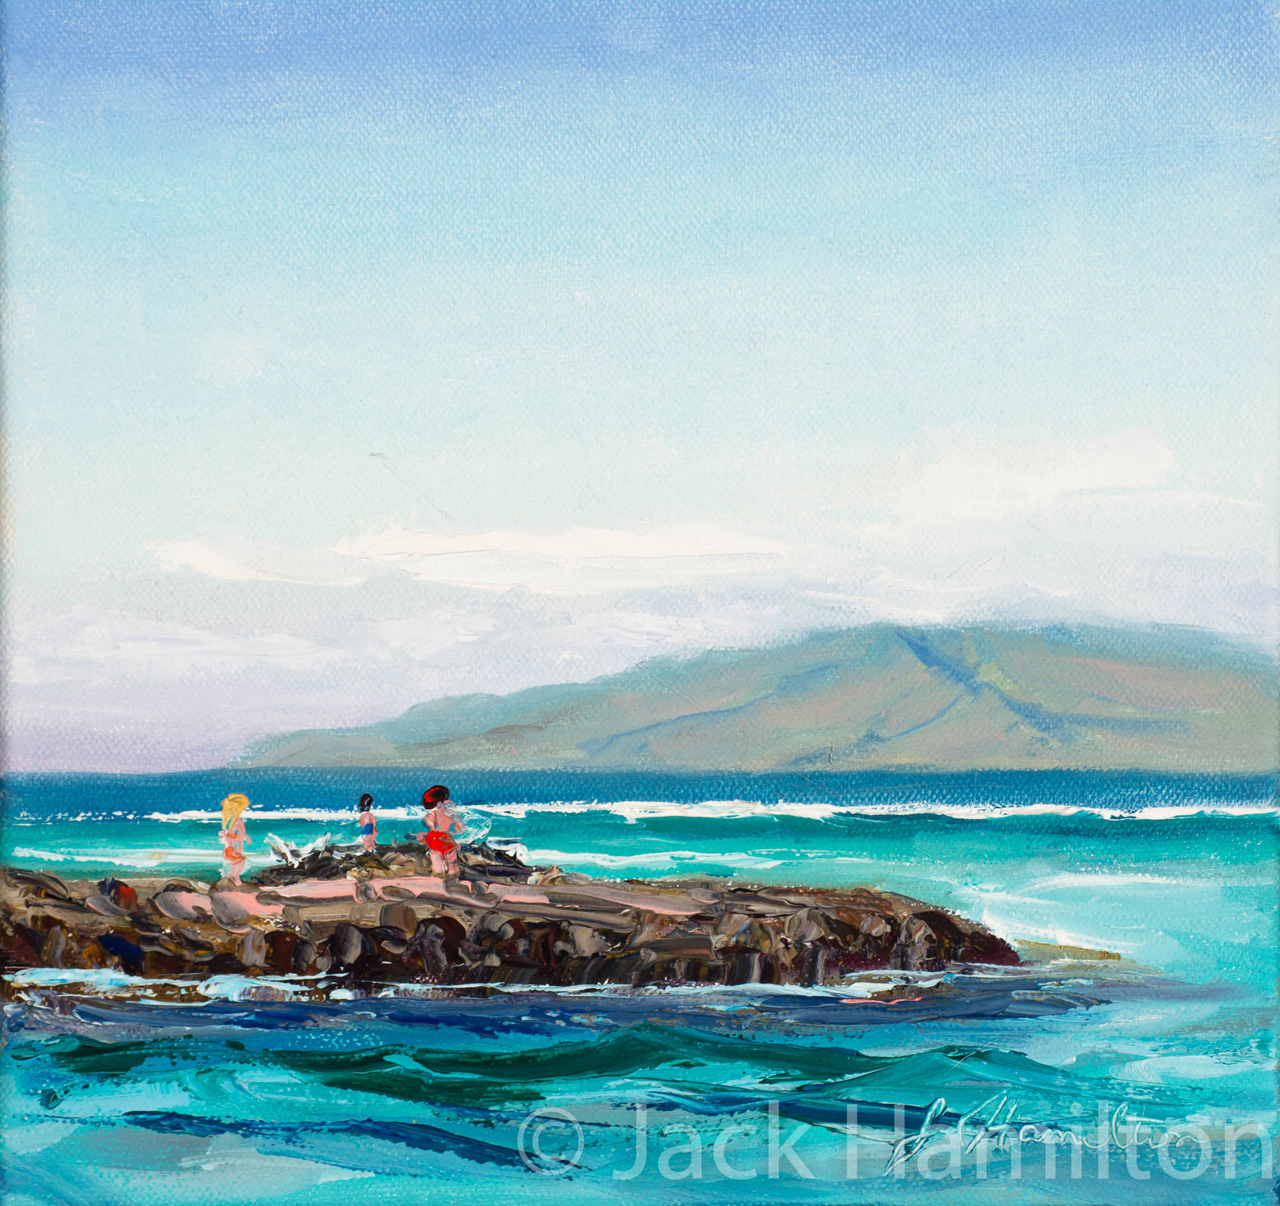 Breakwater At Lahaina Harbor by Jack Hamilton oil on canvas